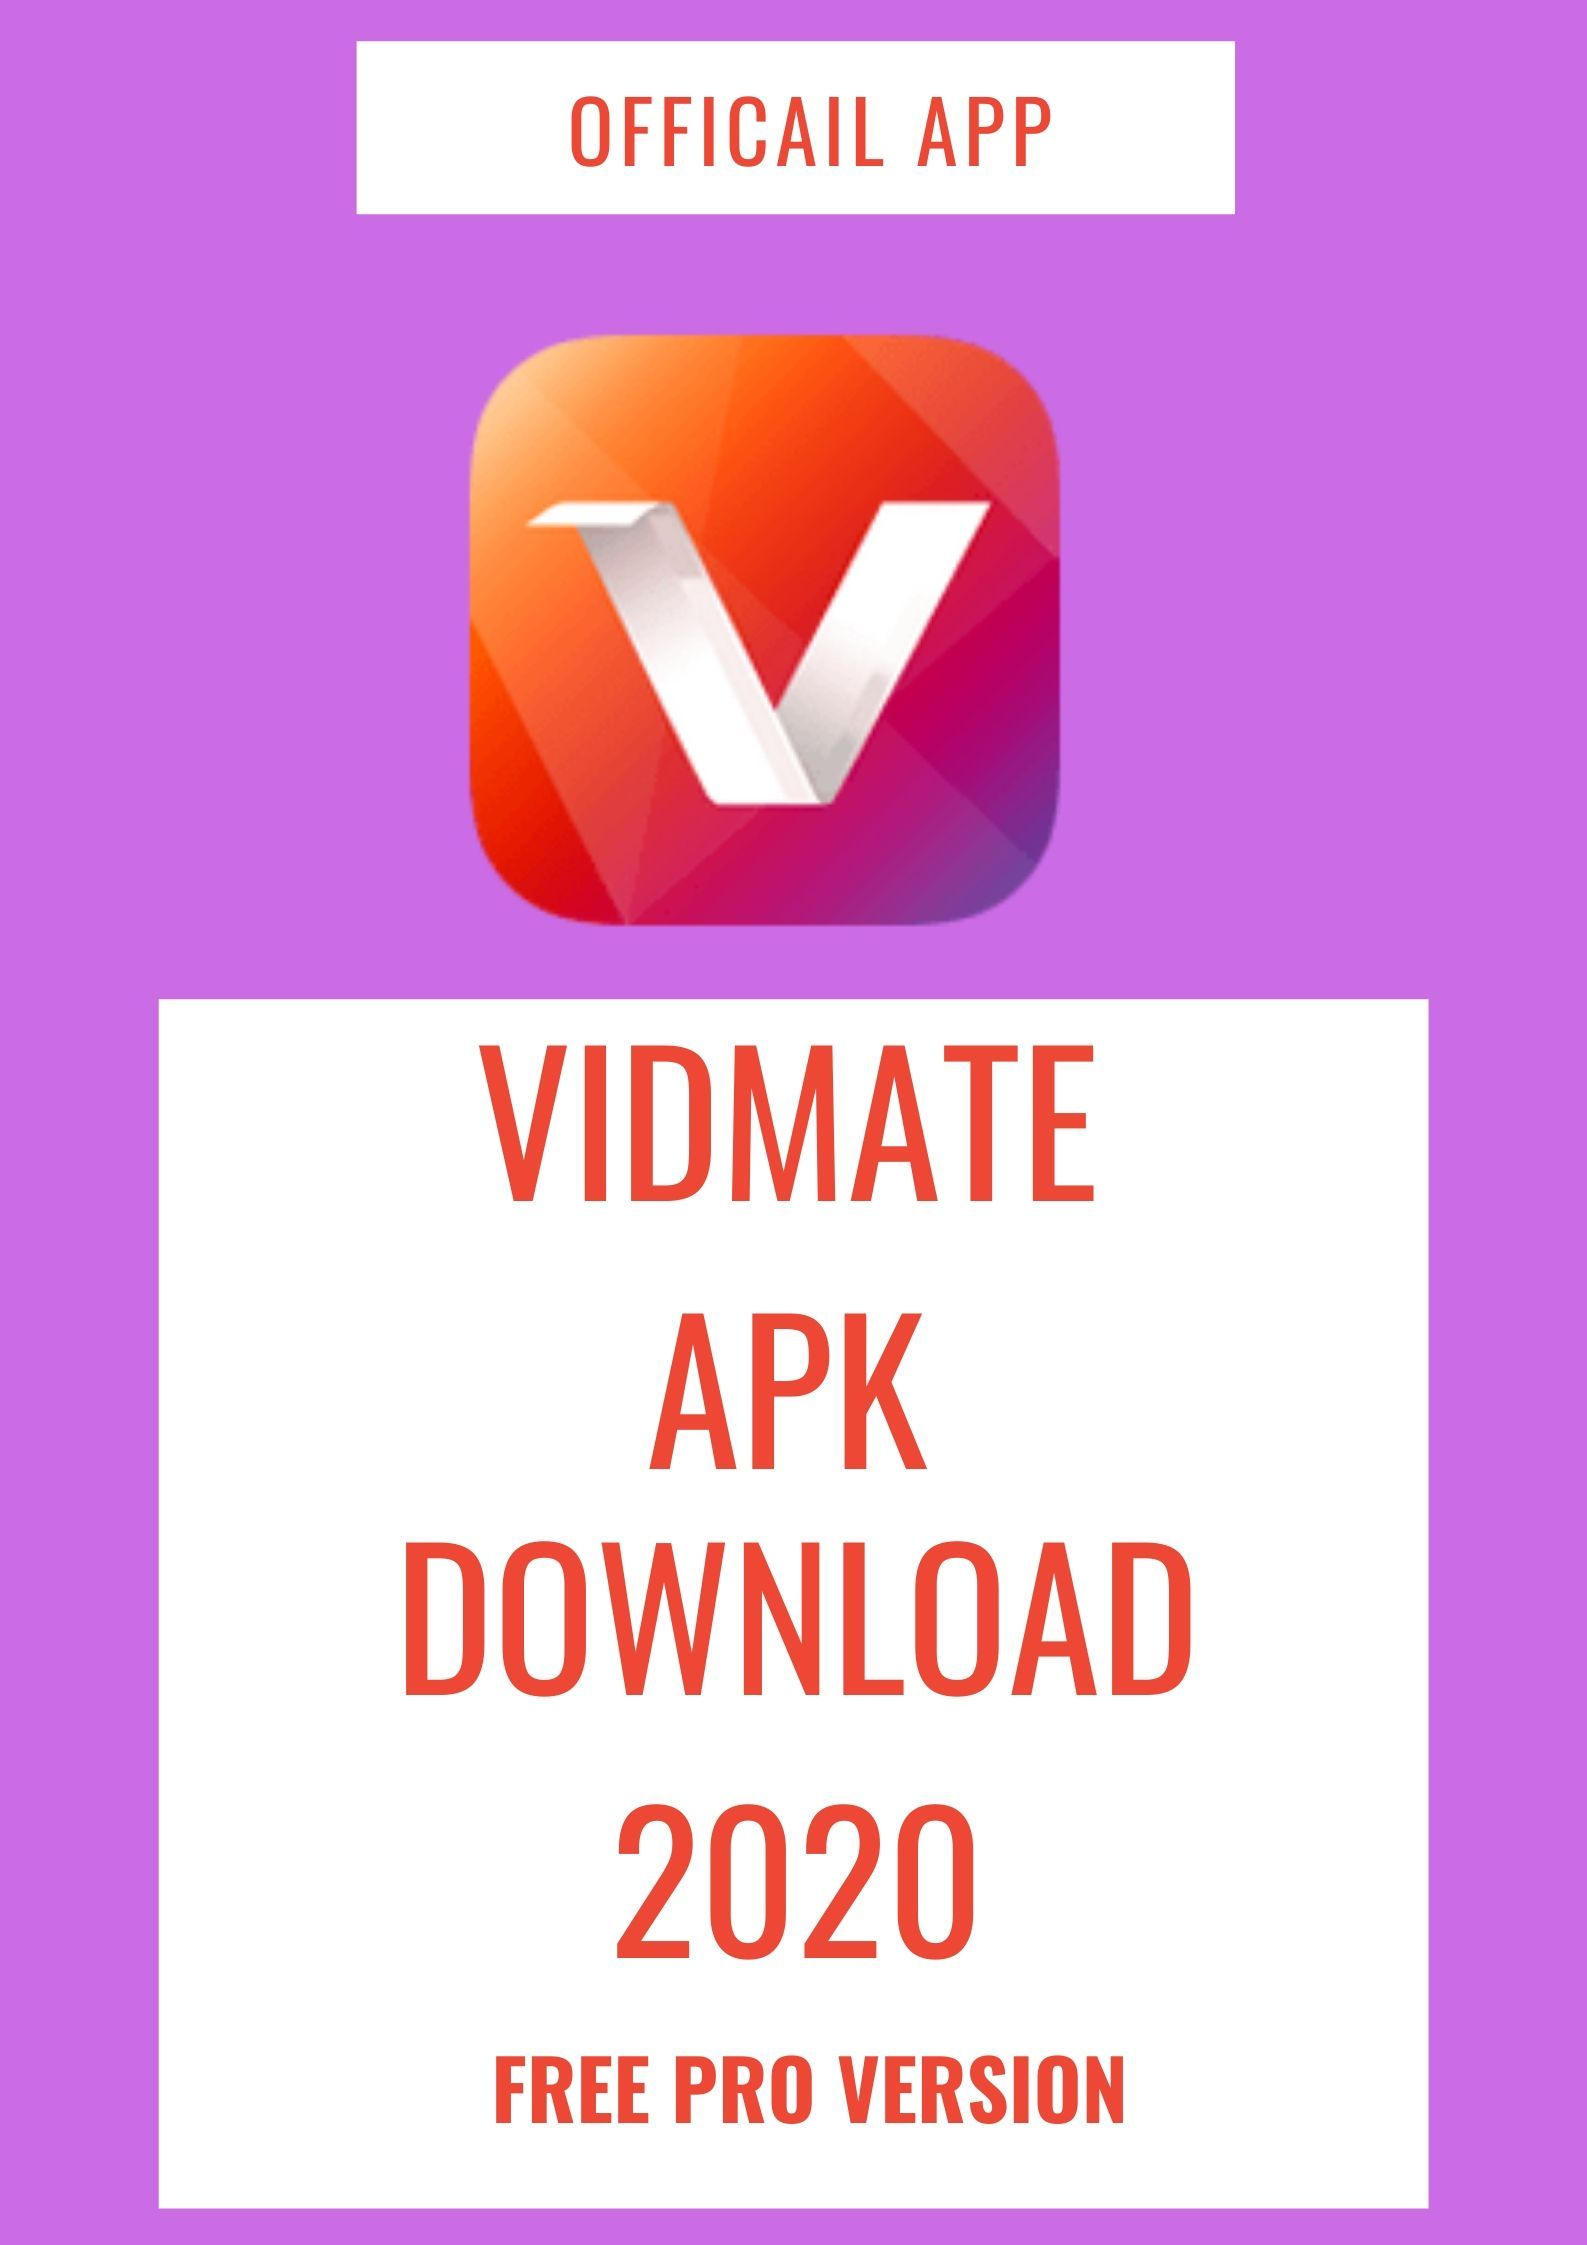 Vidmate App 2020 Youtube Video Downloader In 2020 With Images